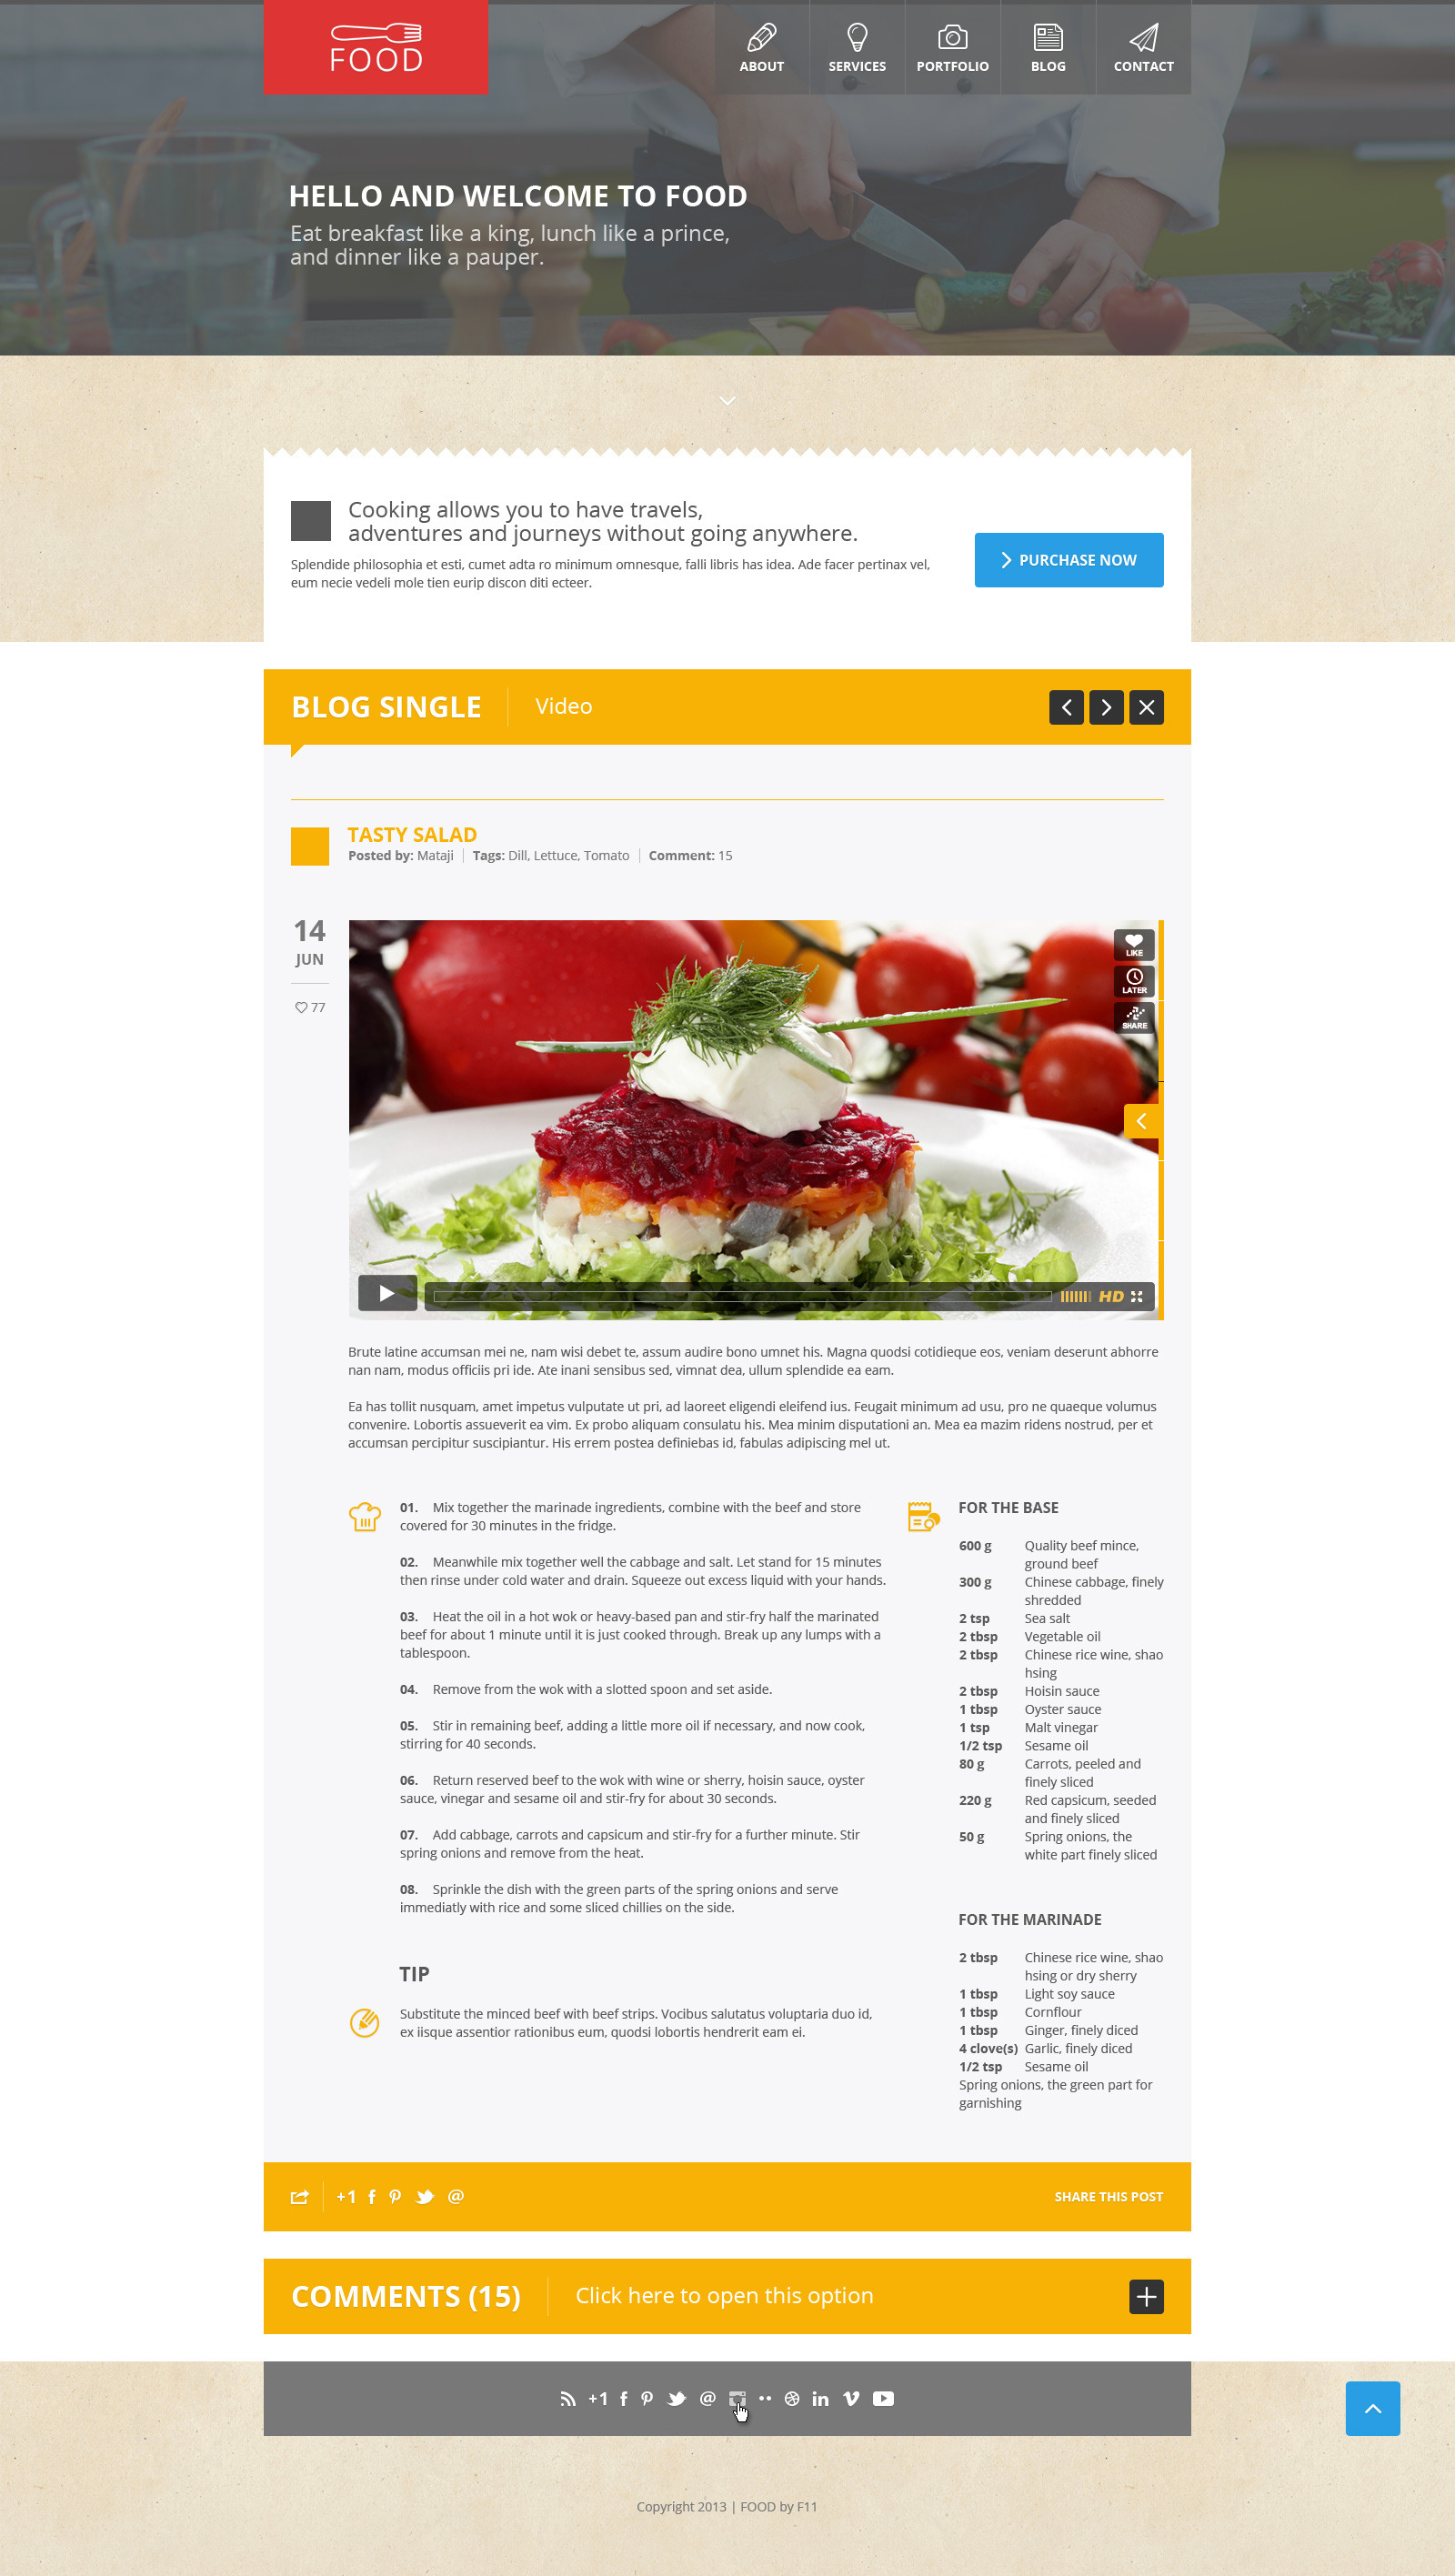 Food - Food & Restaurant PSD Single Page - Food - Food & Restaurant PSD Single Page.  Blog video.